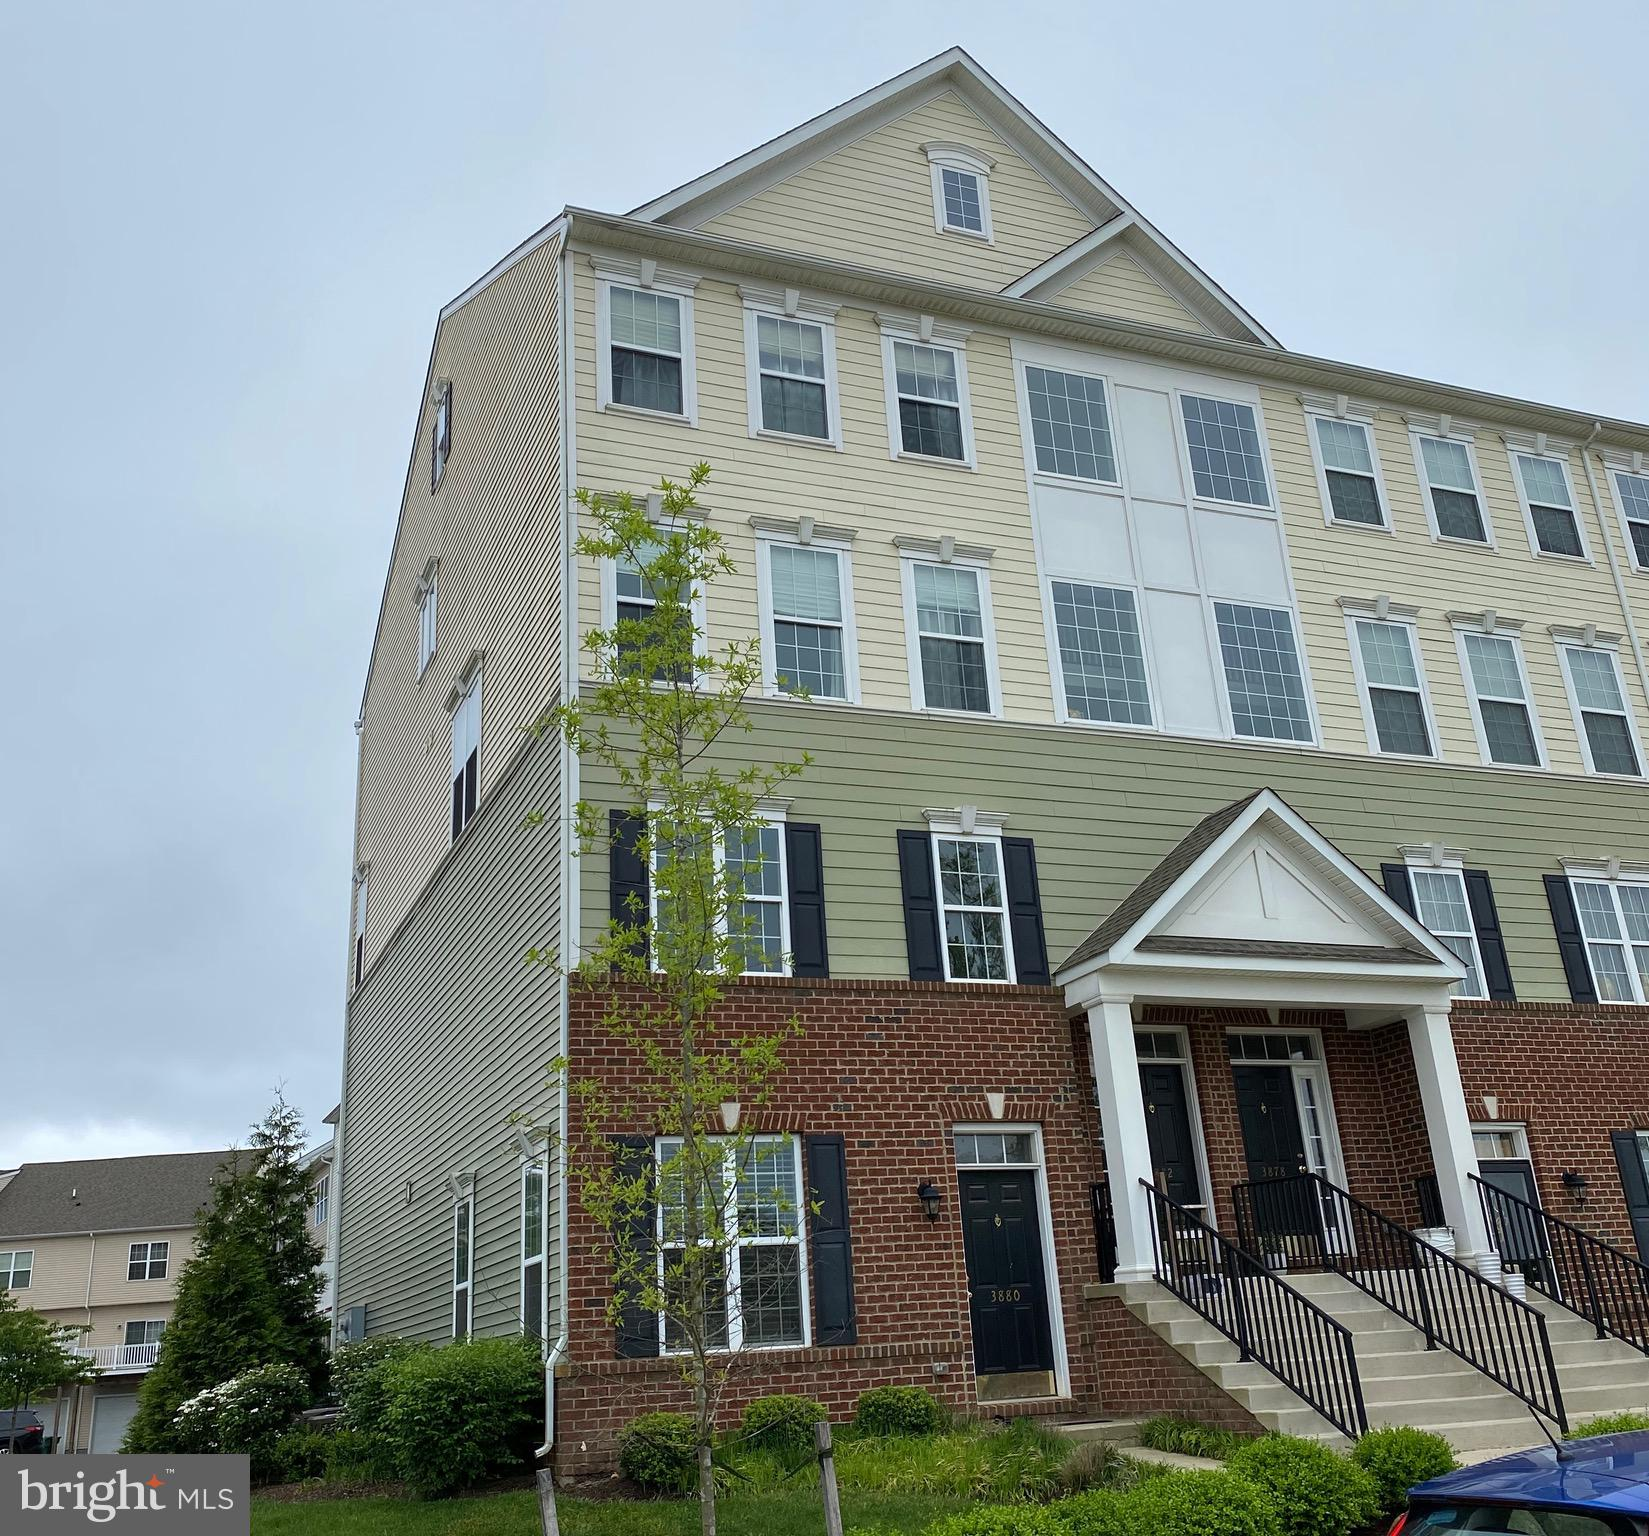 The best of the best of the best is the only way to describe this one-owner end unit Montchanin Chesterfield model.  No options spared with some custom upgrades not even offered by the builder. Welcome to. 3882 Green Street. The largest home on the promenade of Darley Green overlooking the central green space, and the architecturally designed Claymont Public Library. This spectacular unit offers an attached one car garage and ground level basement. Laminate  wood floors, and custom wainscoting give the great room and dining room a resort custom feel and recessed lighting bathe the entire level in warm light. The kitchen is wrapped in 42~ cabinets with crown molding, stainless hardware and appliances and underaged grains countertops. The second living room is also adjacent to a convenient covered deck with storage closet. The main floor powder room is discretely separated from the rest of the living space but is in a convenient location. The master suite is located at the top of the stairs just above the mid-way landing and large picture window. Overlooking the main green space, it features a tray ceiling, recessed lights, a ceiling fan and convenient outlet for indirect ceiling lighting. Step into the master bathroom featuring large format tile, a water closet, massive soaking tub, separate water closet and extended tile base frameless shower that was custom designed by this seller from the builder. Two additional bedrooms and a full bathroom complete the bedroom level. All in all,  this chesterfield was built to break the mold and offers custom touches that are rarely found at this price point. Consider this to be your next home.